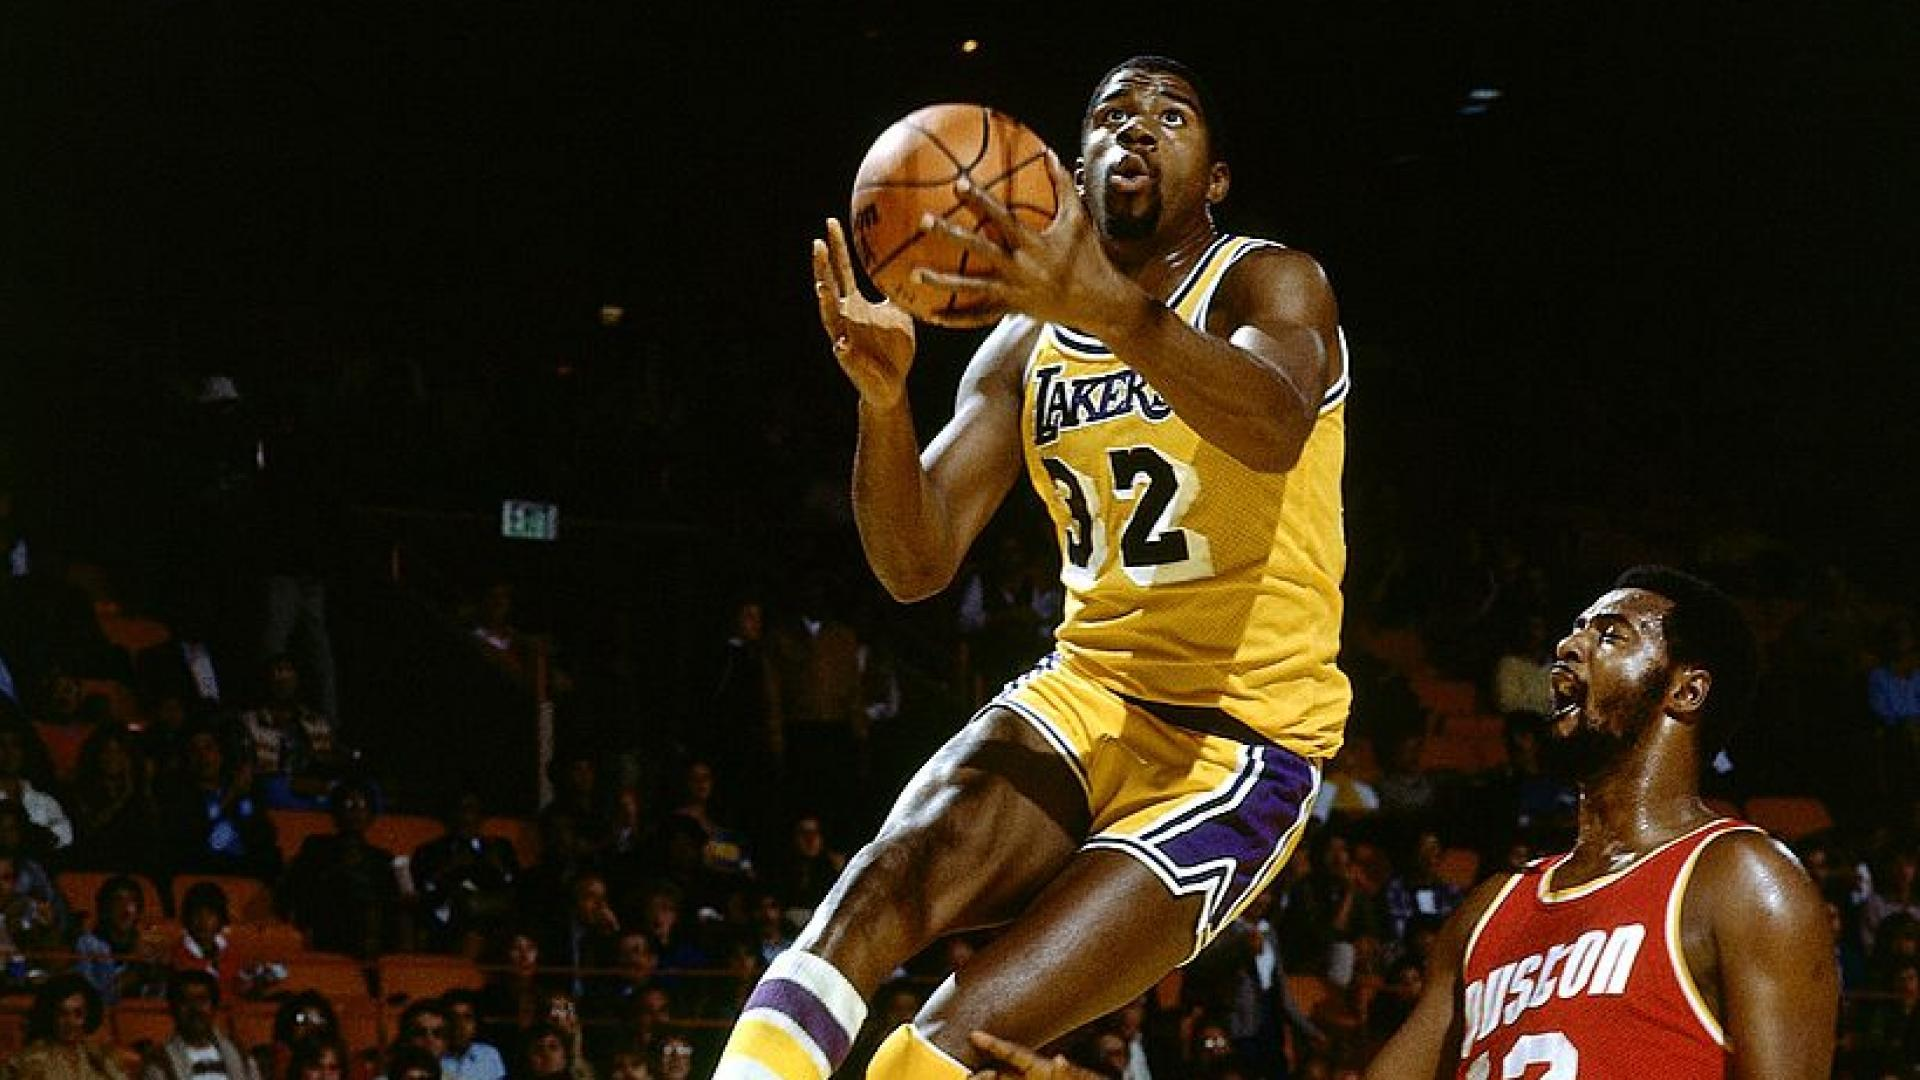 finest selection 41ba4 643ae Magic Johnson s size and playmaking ability made him stand out in NBA lore.